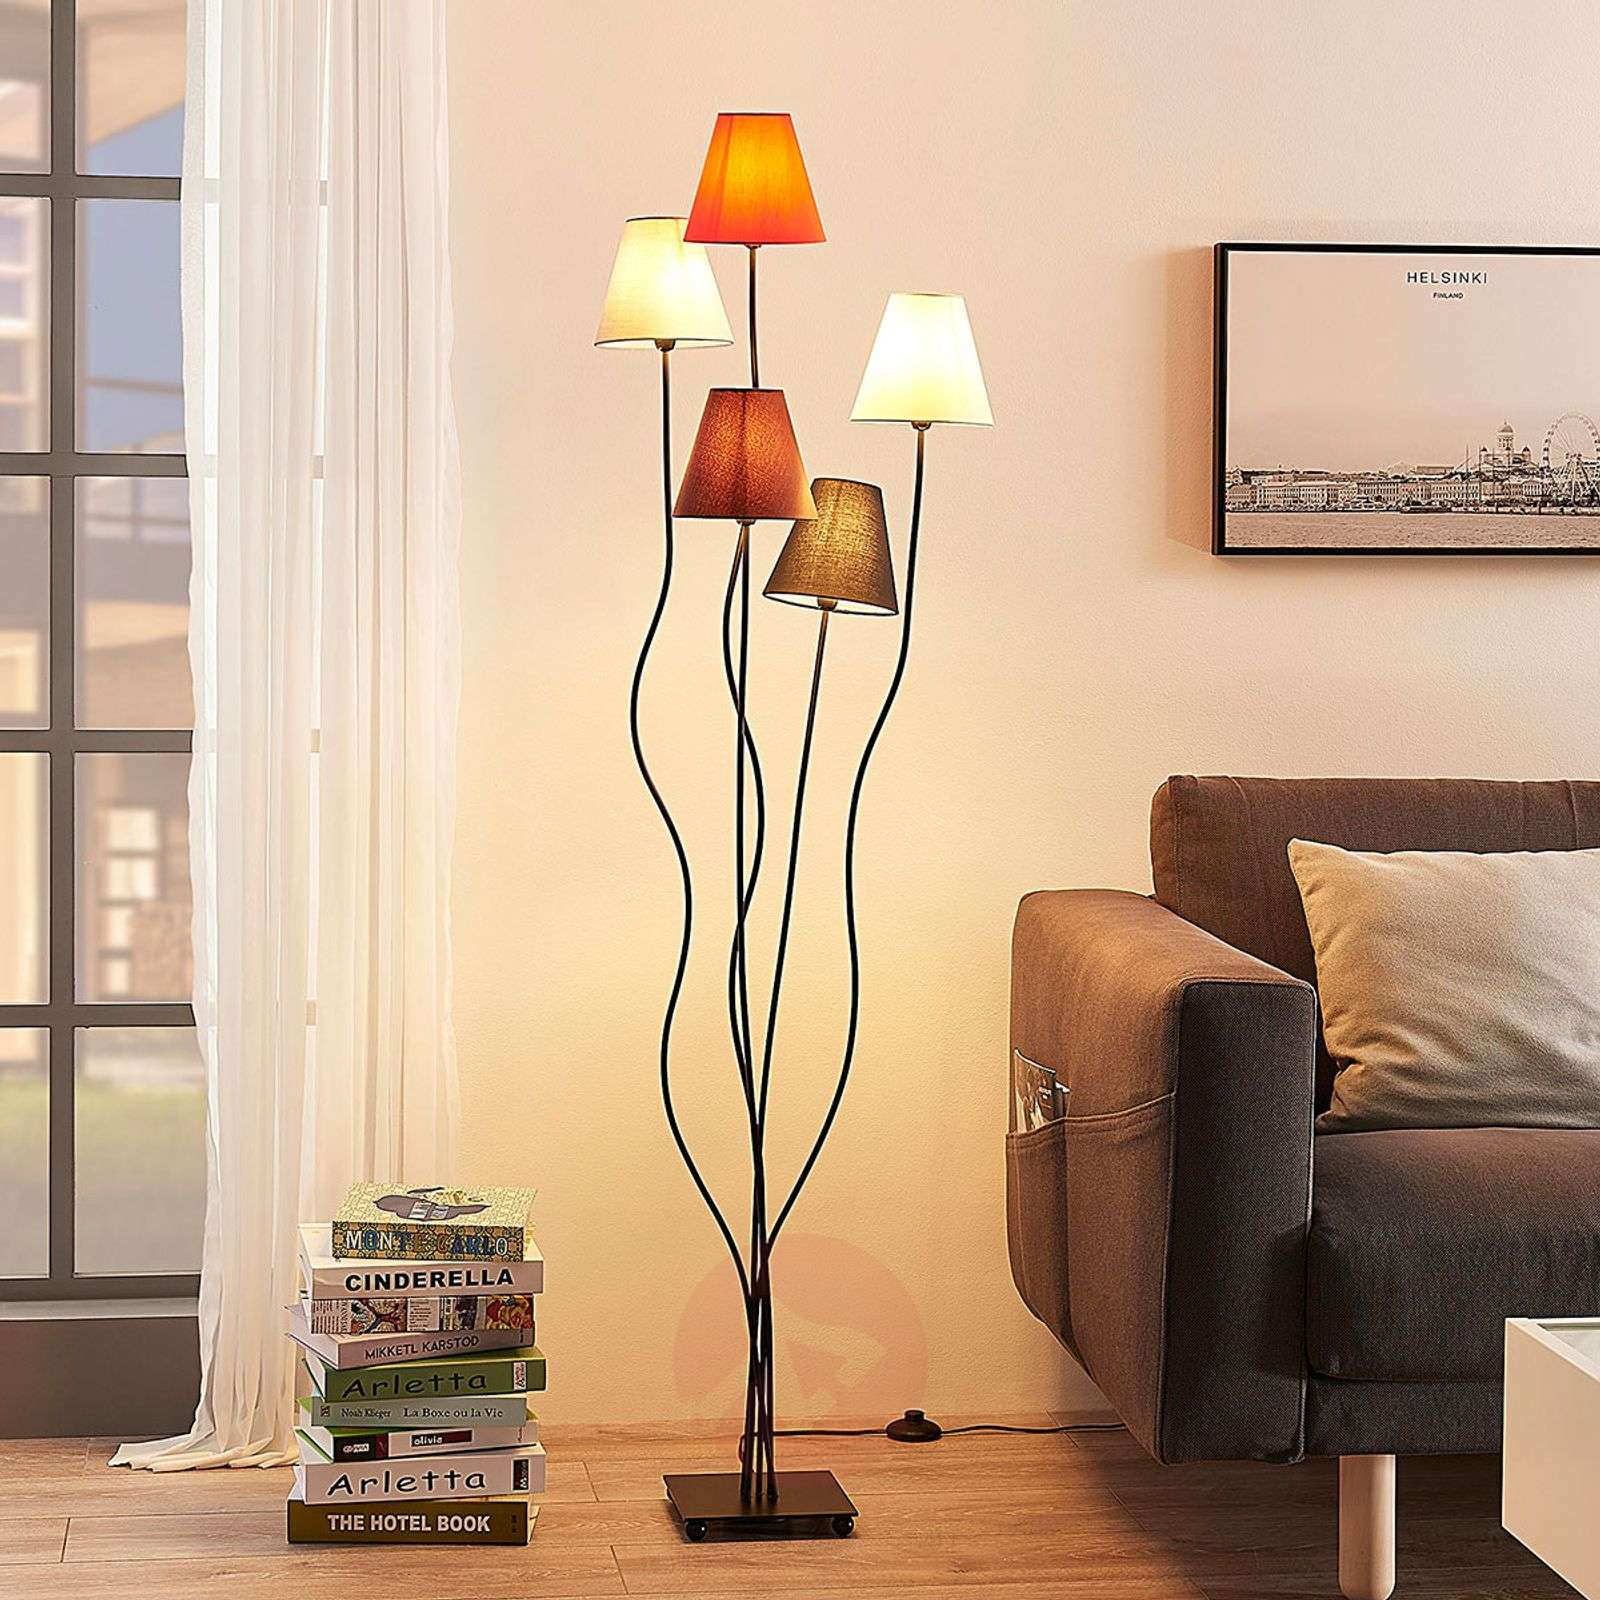 Melis five-bulb floor lamp for the living room | Lights.ie